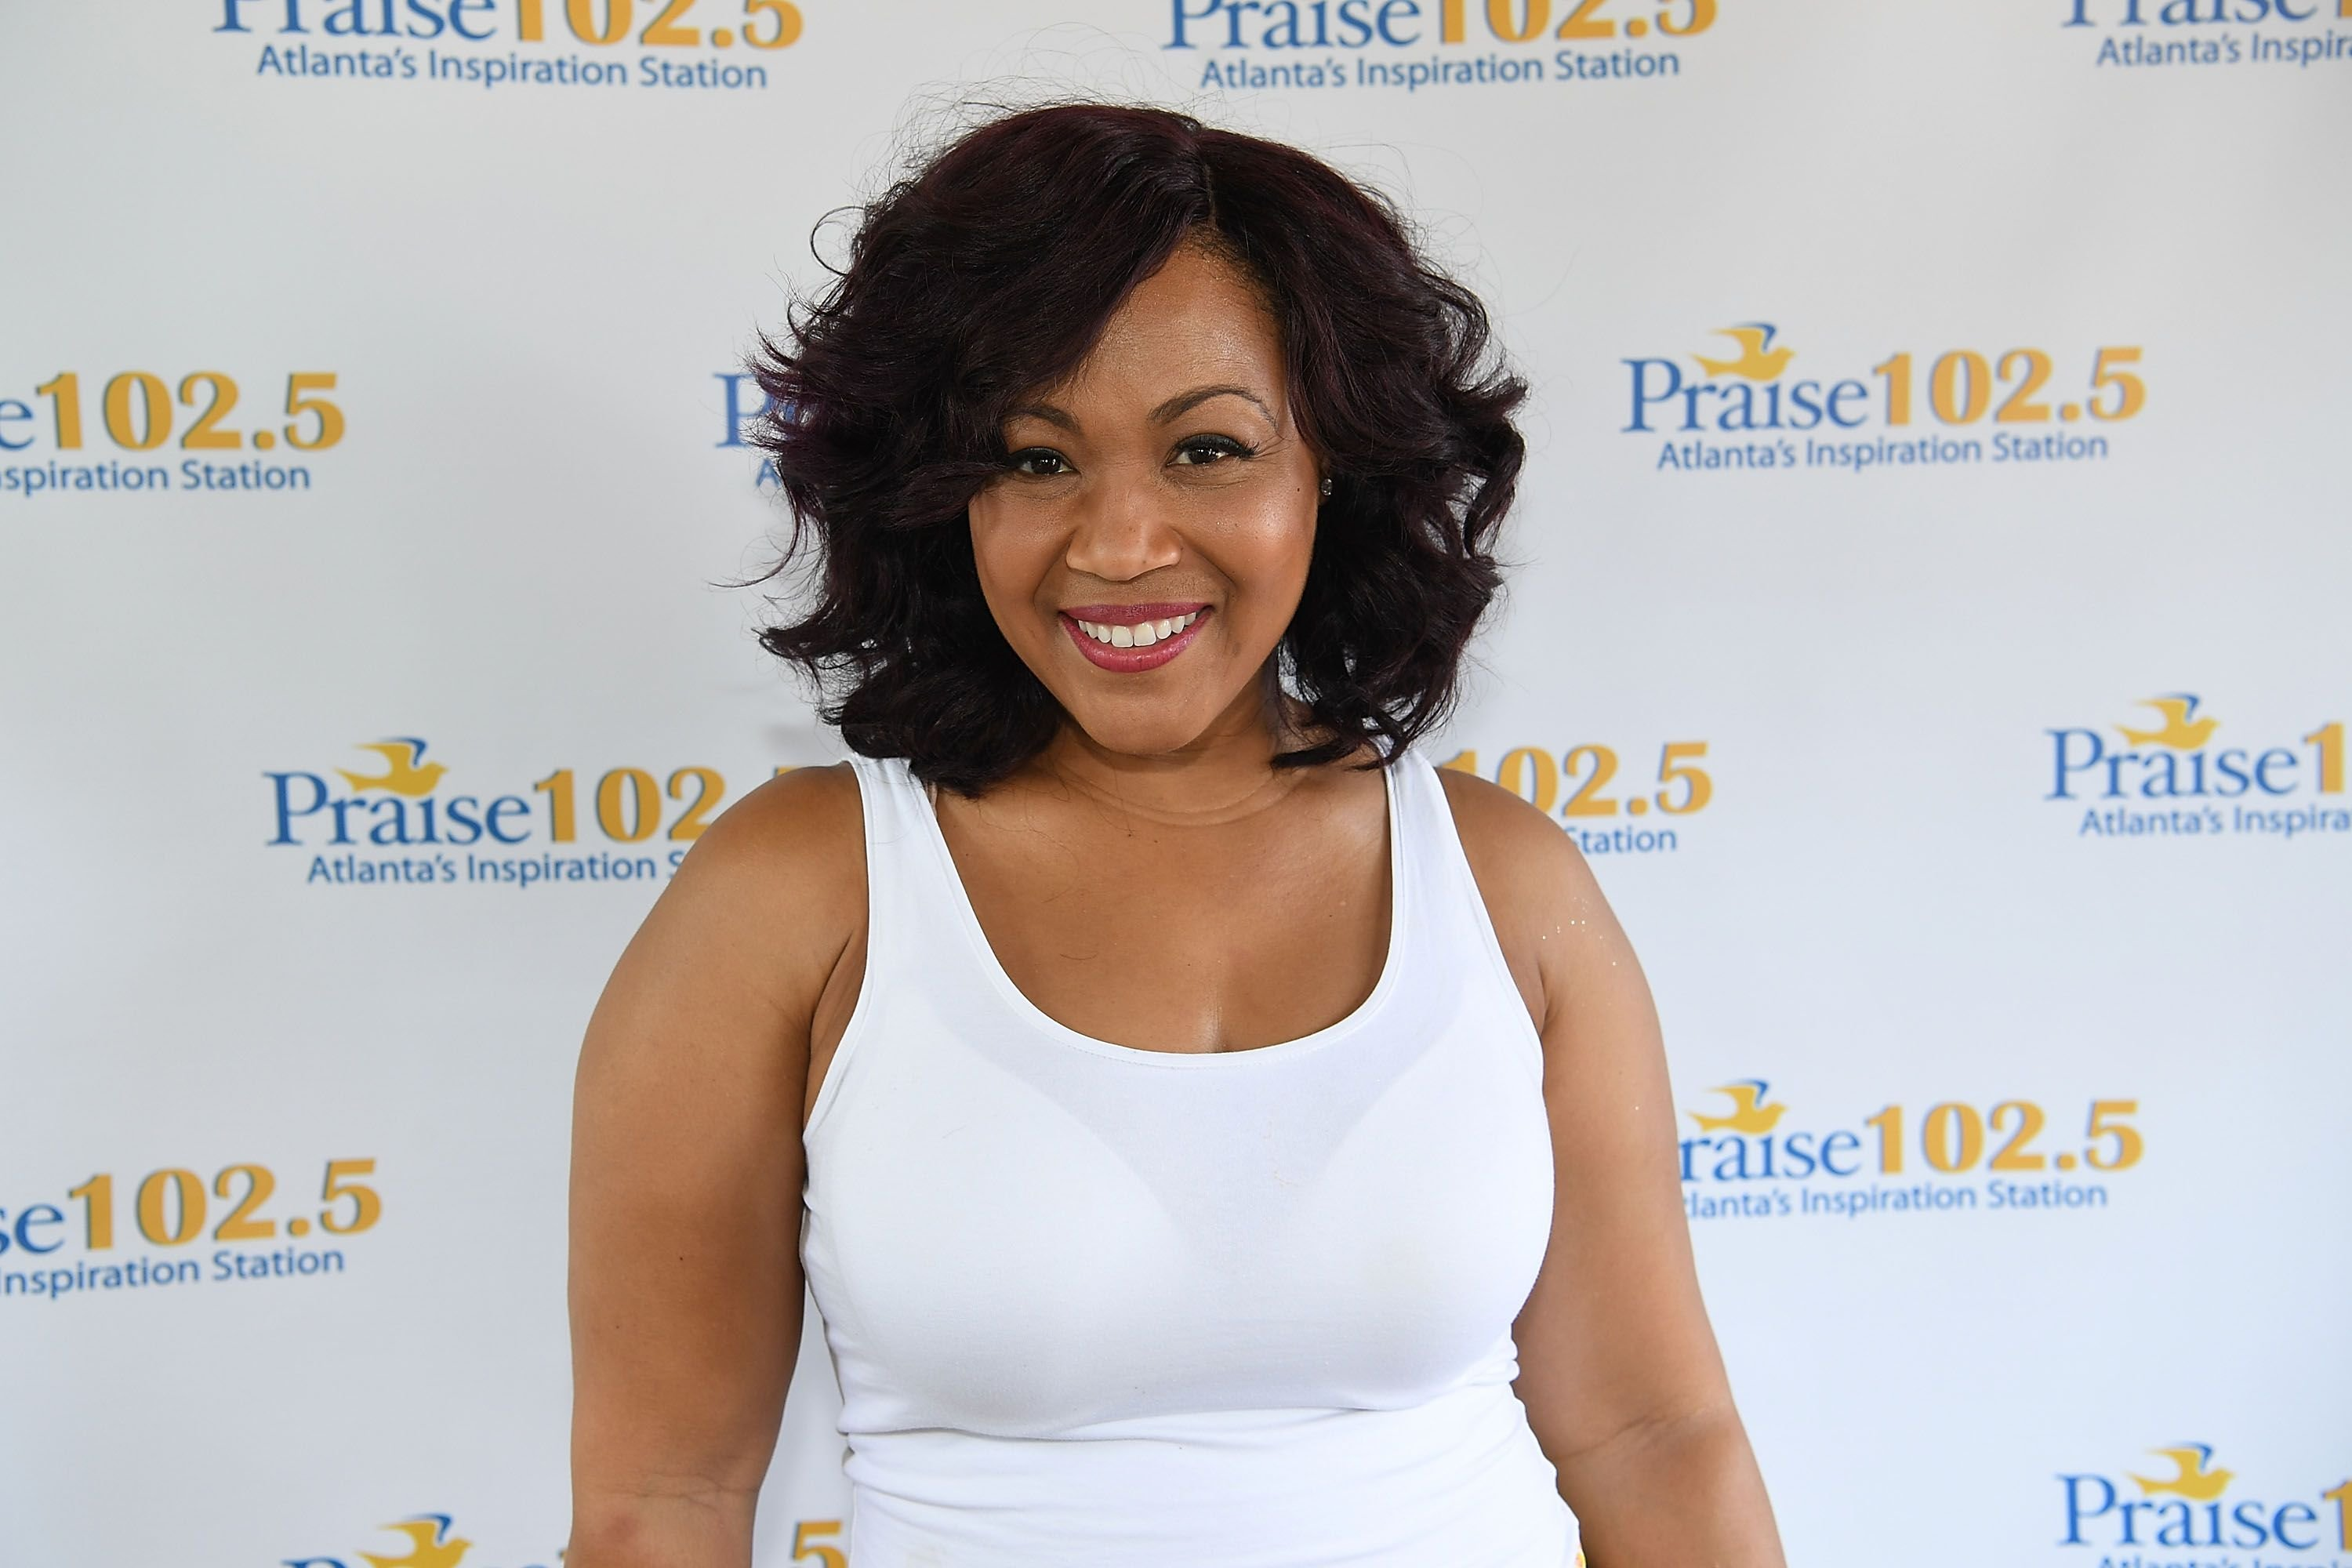 """Erica Campbell at the Praise 102.5's """"Praise In The Park"""" at the Centennial Olympic Park on August 6, 2016 in Atlanta, Georgia. 